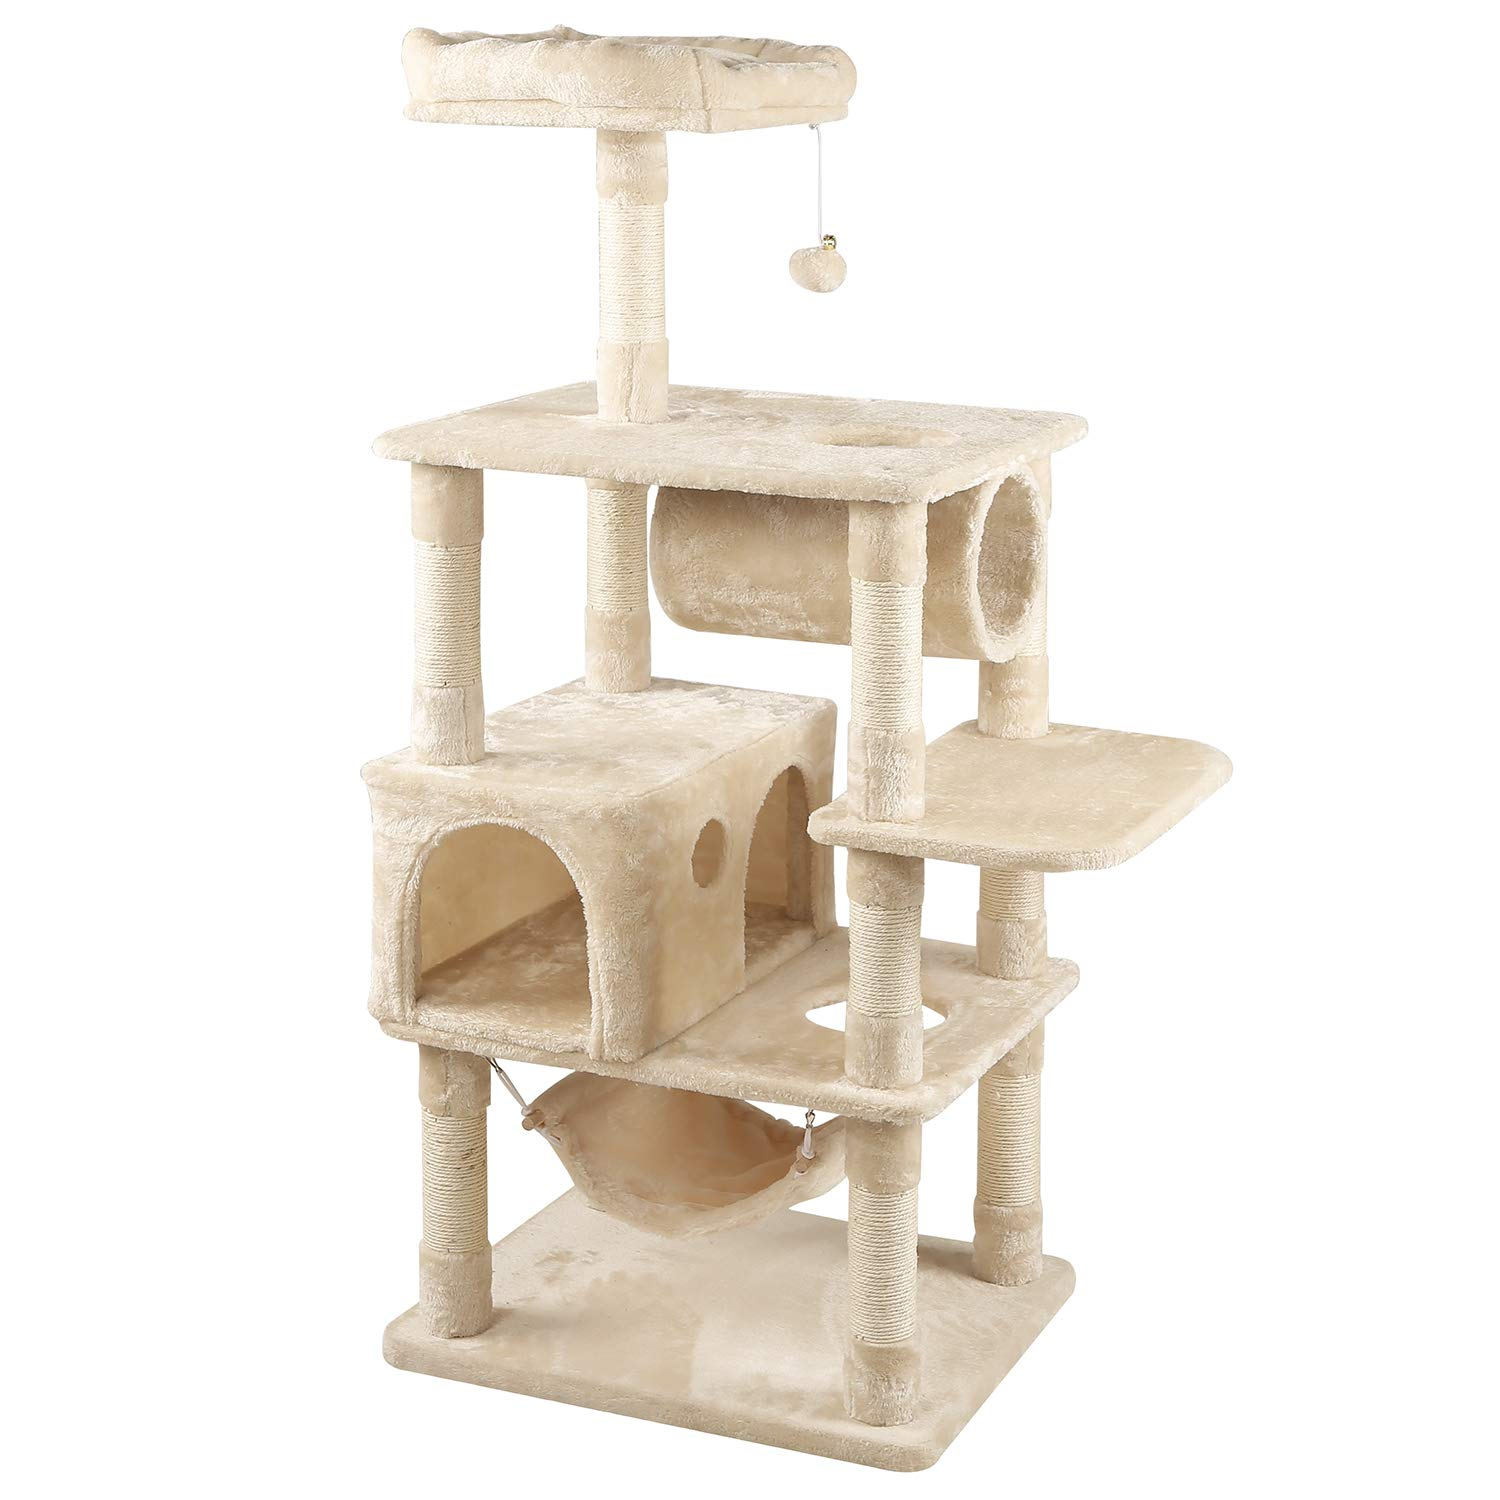 WLIVE 59'' Cat Tree Condo with Sisal Scratching Posts, Spacious Condo and Curious Tunnel, Cat Tower Furniture WF063A